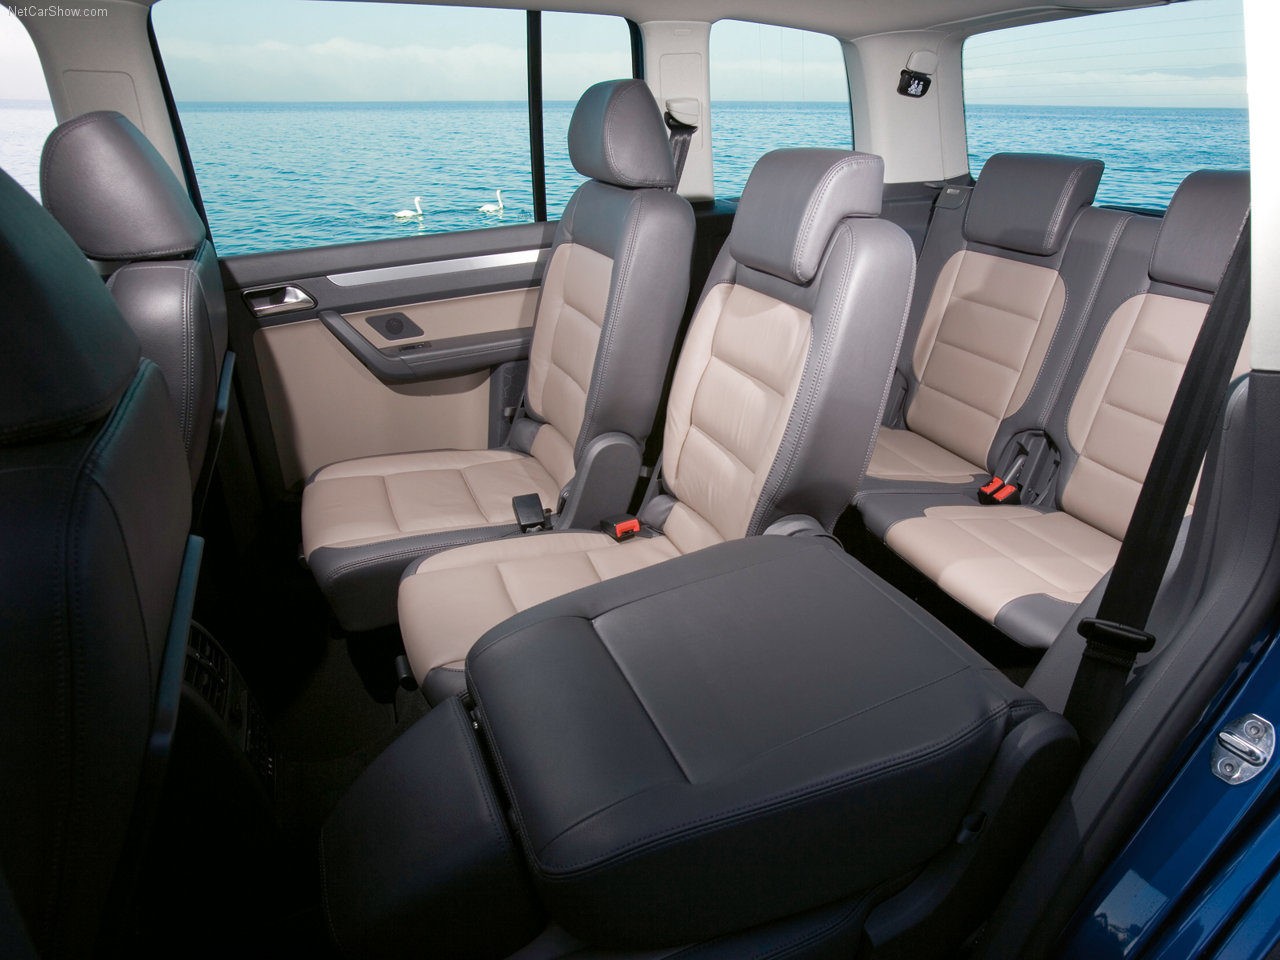 vw touran 10 high quality vw touran pictures on. Black Bedroom Furniture Sets. Home Design Ideas